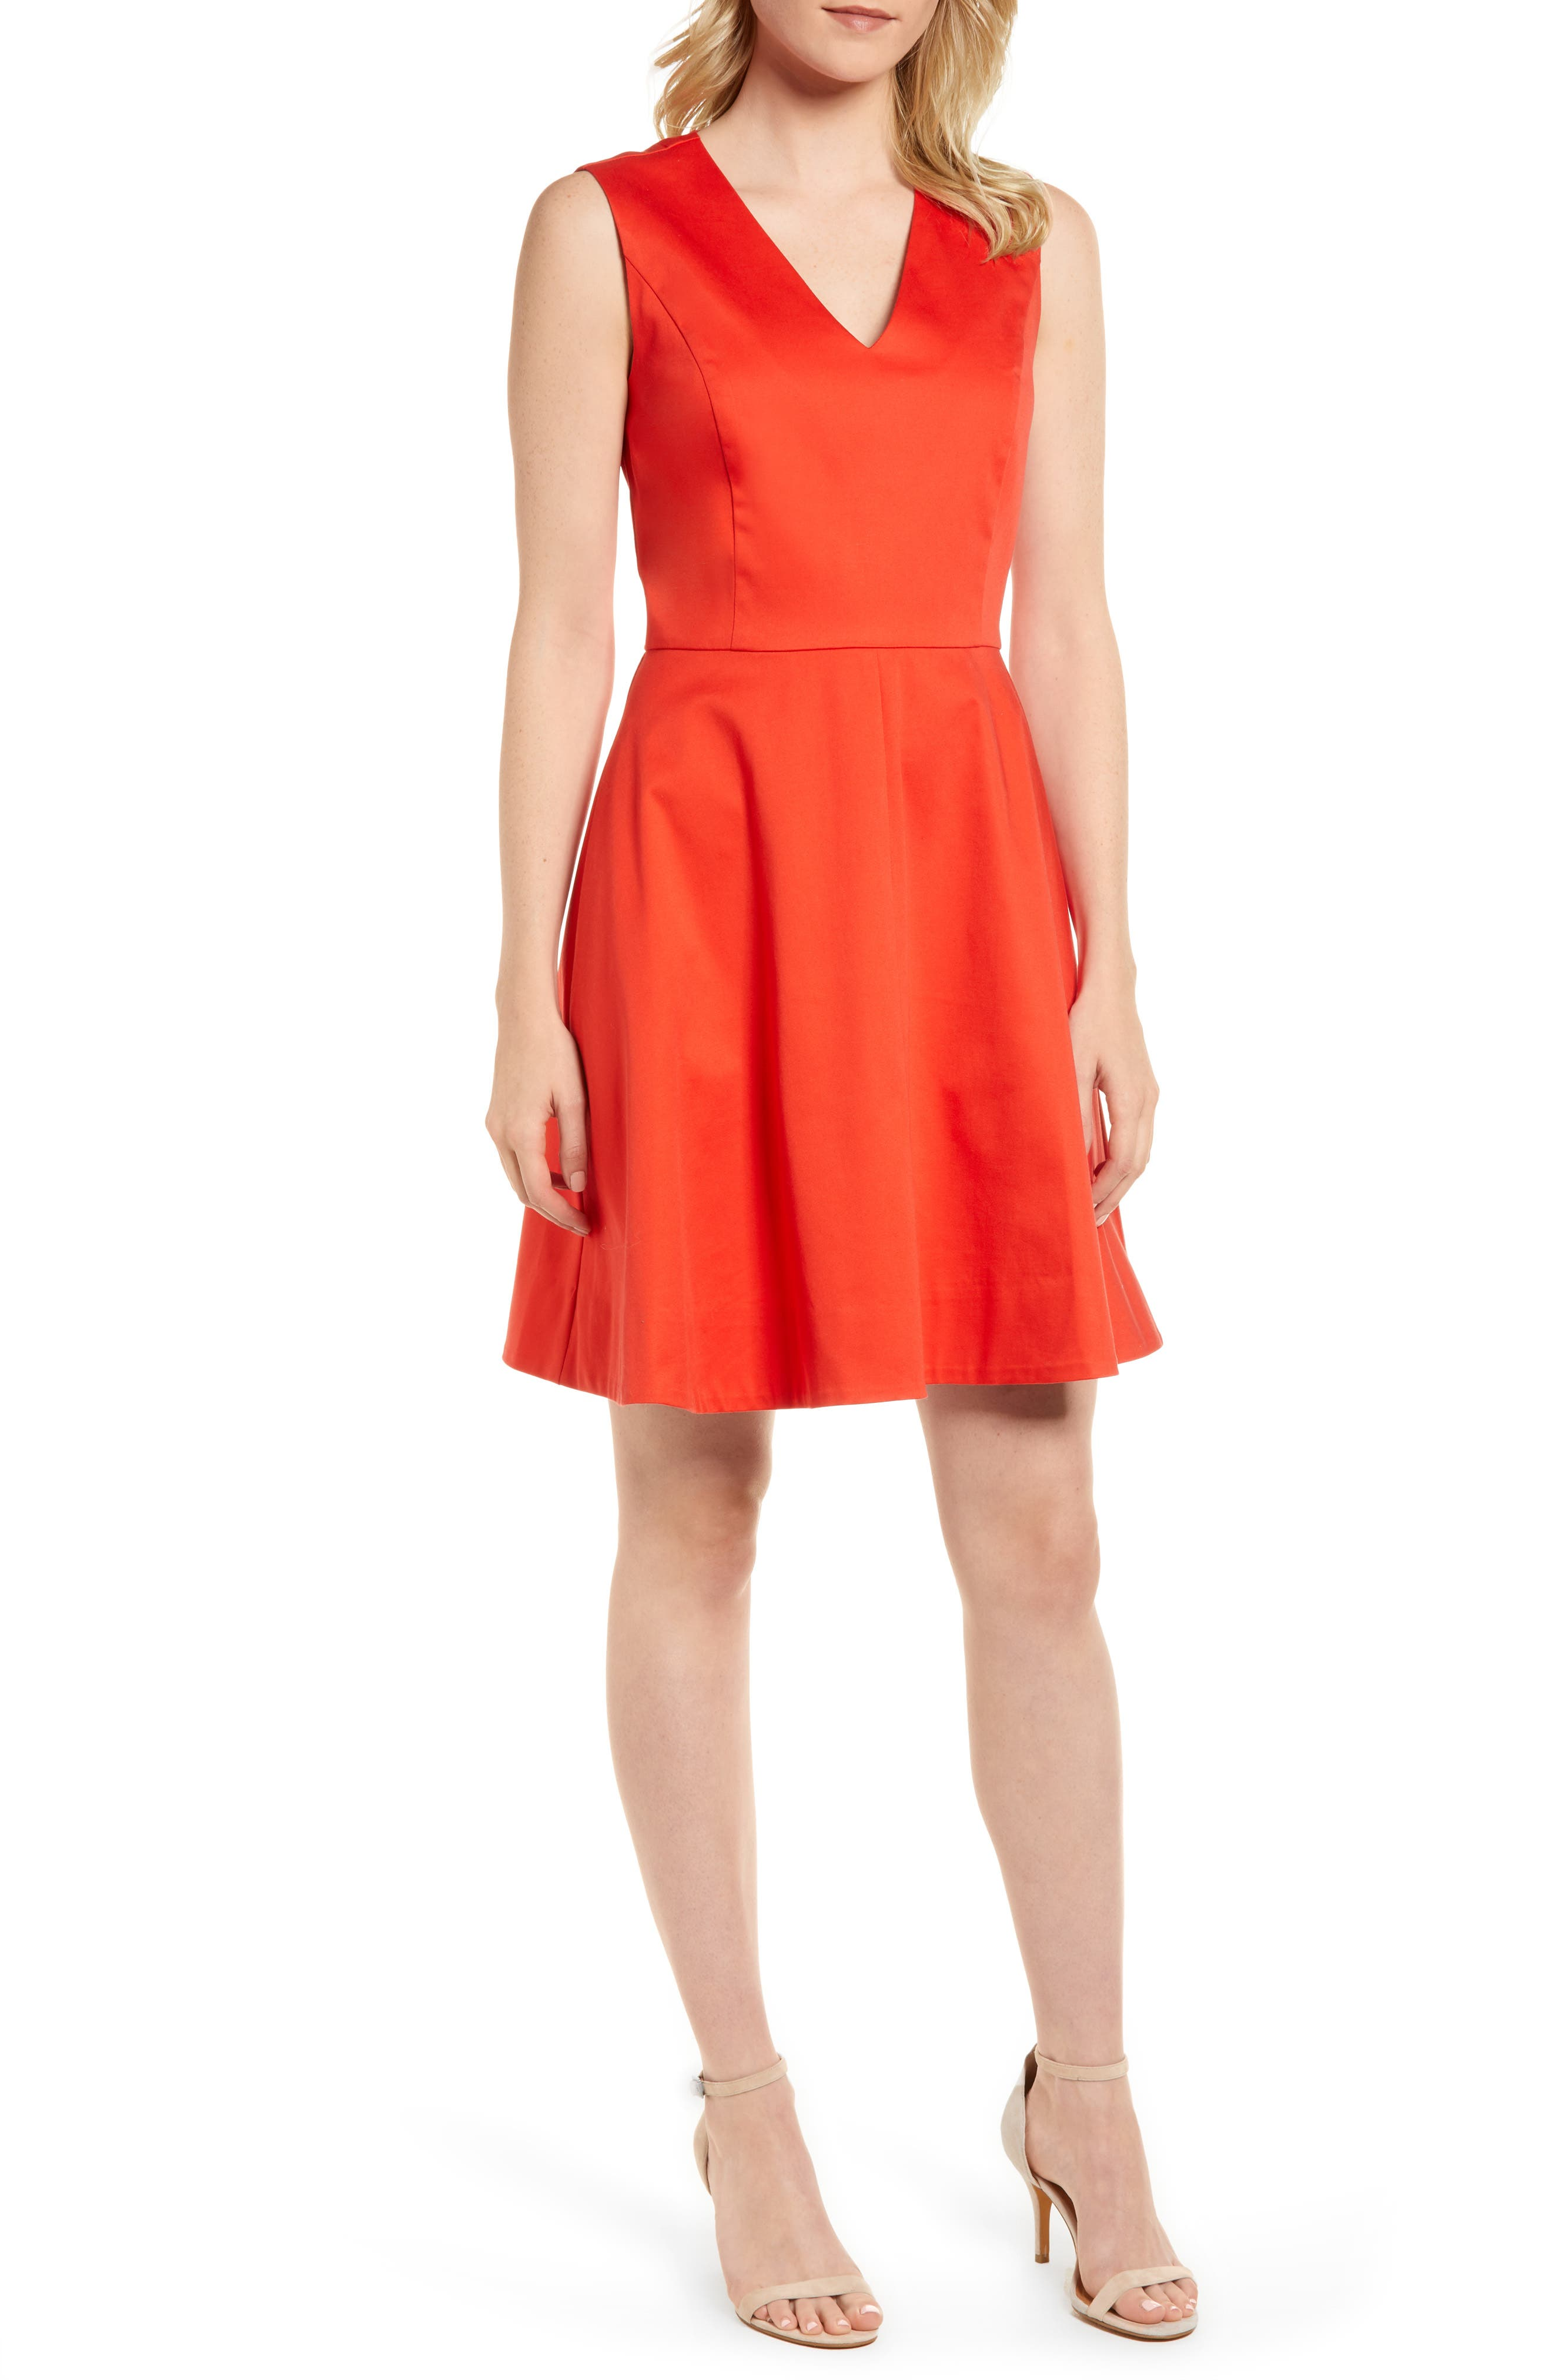 Draper James Love Circle V-Neck Dress